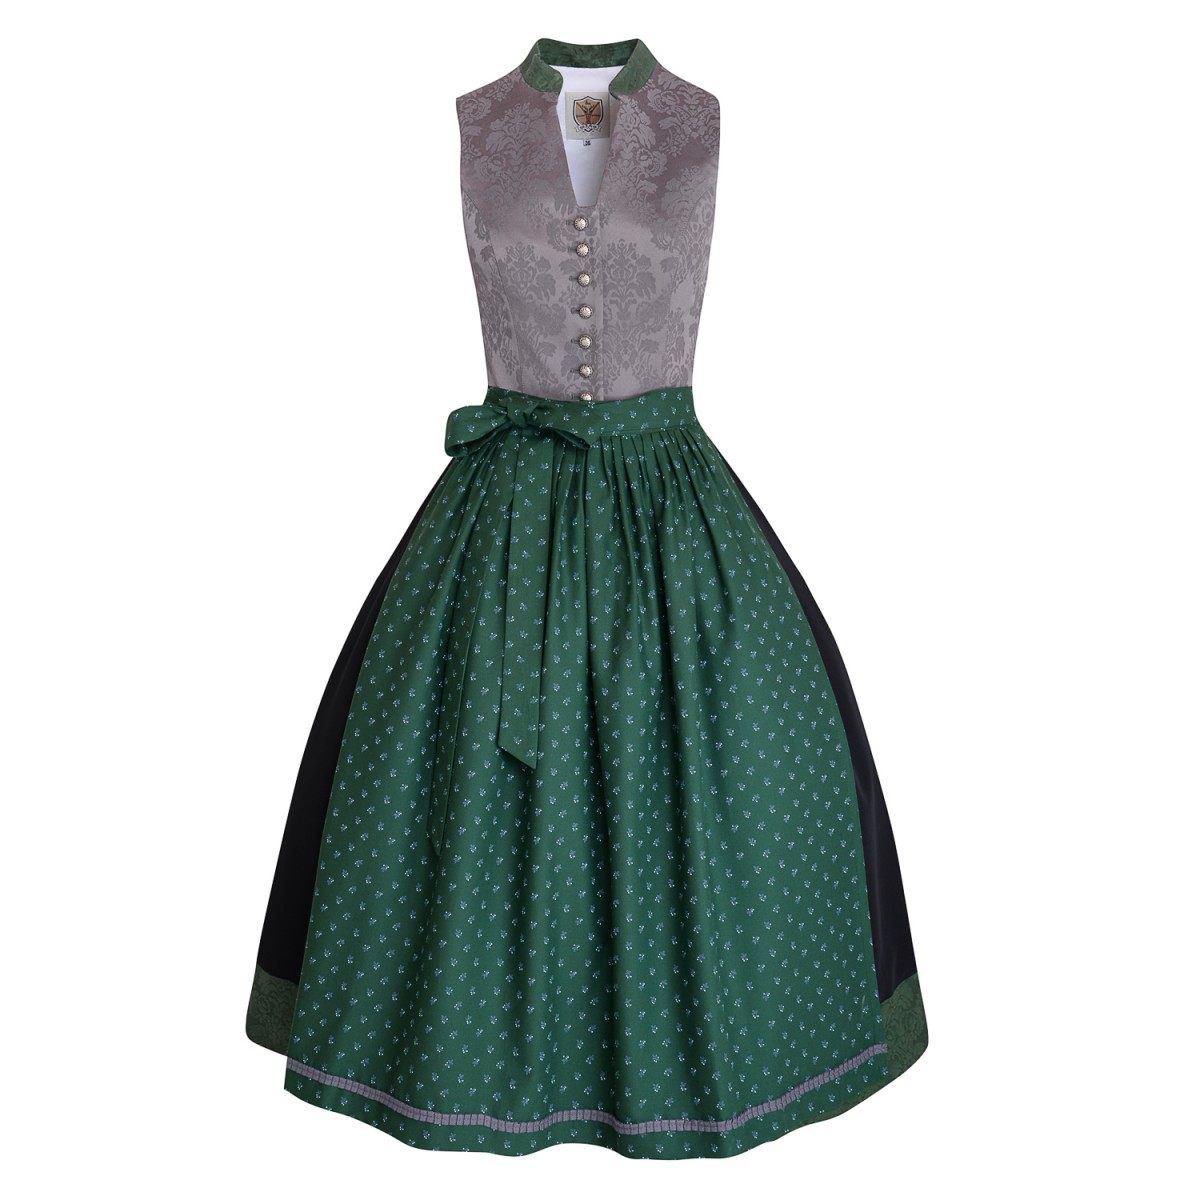 Langes Dirndl Josephine in Grau von Apple of my Eye